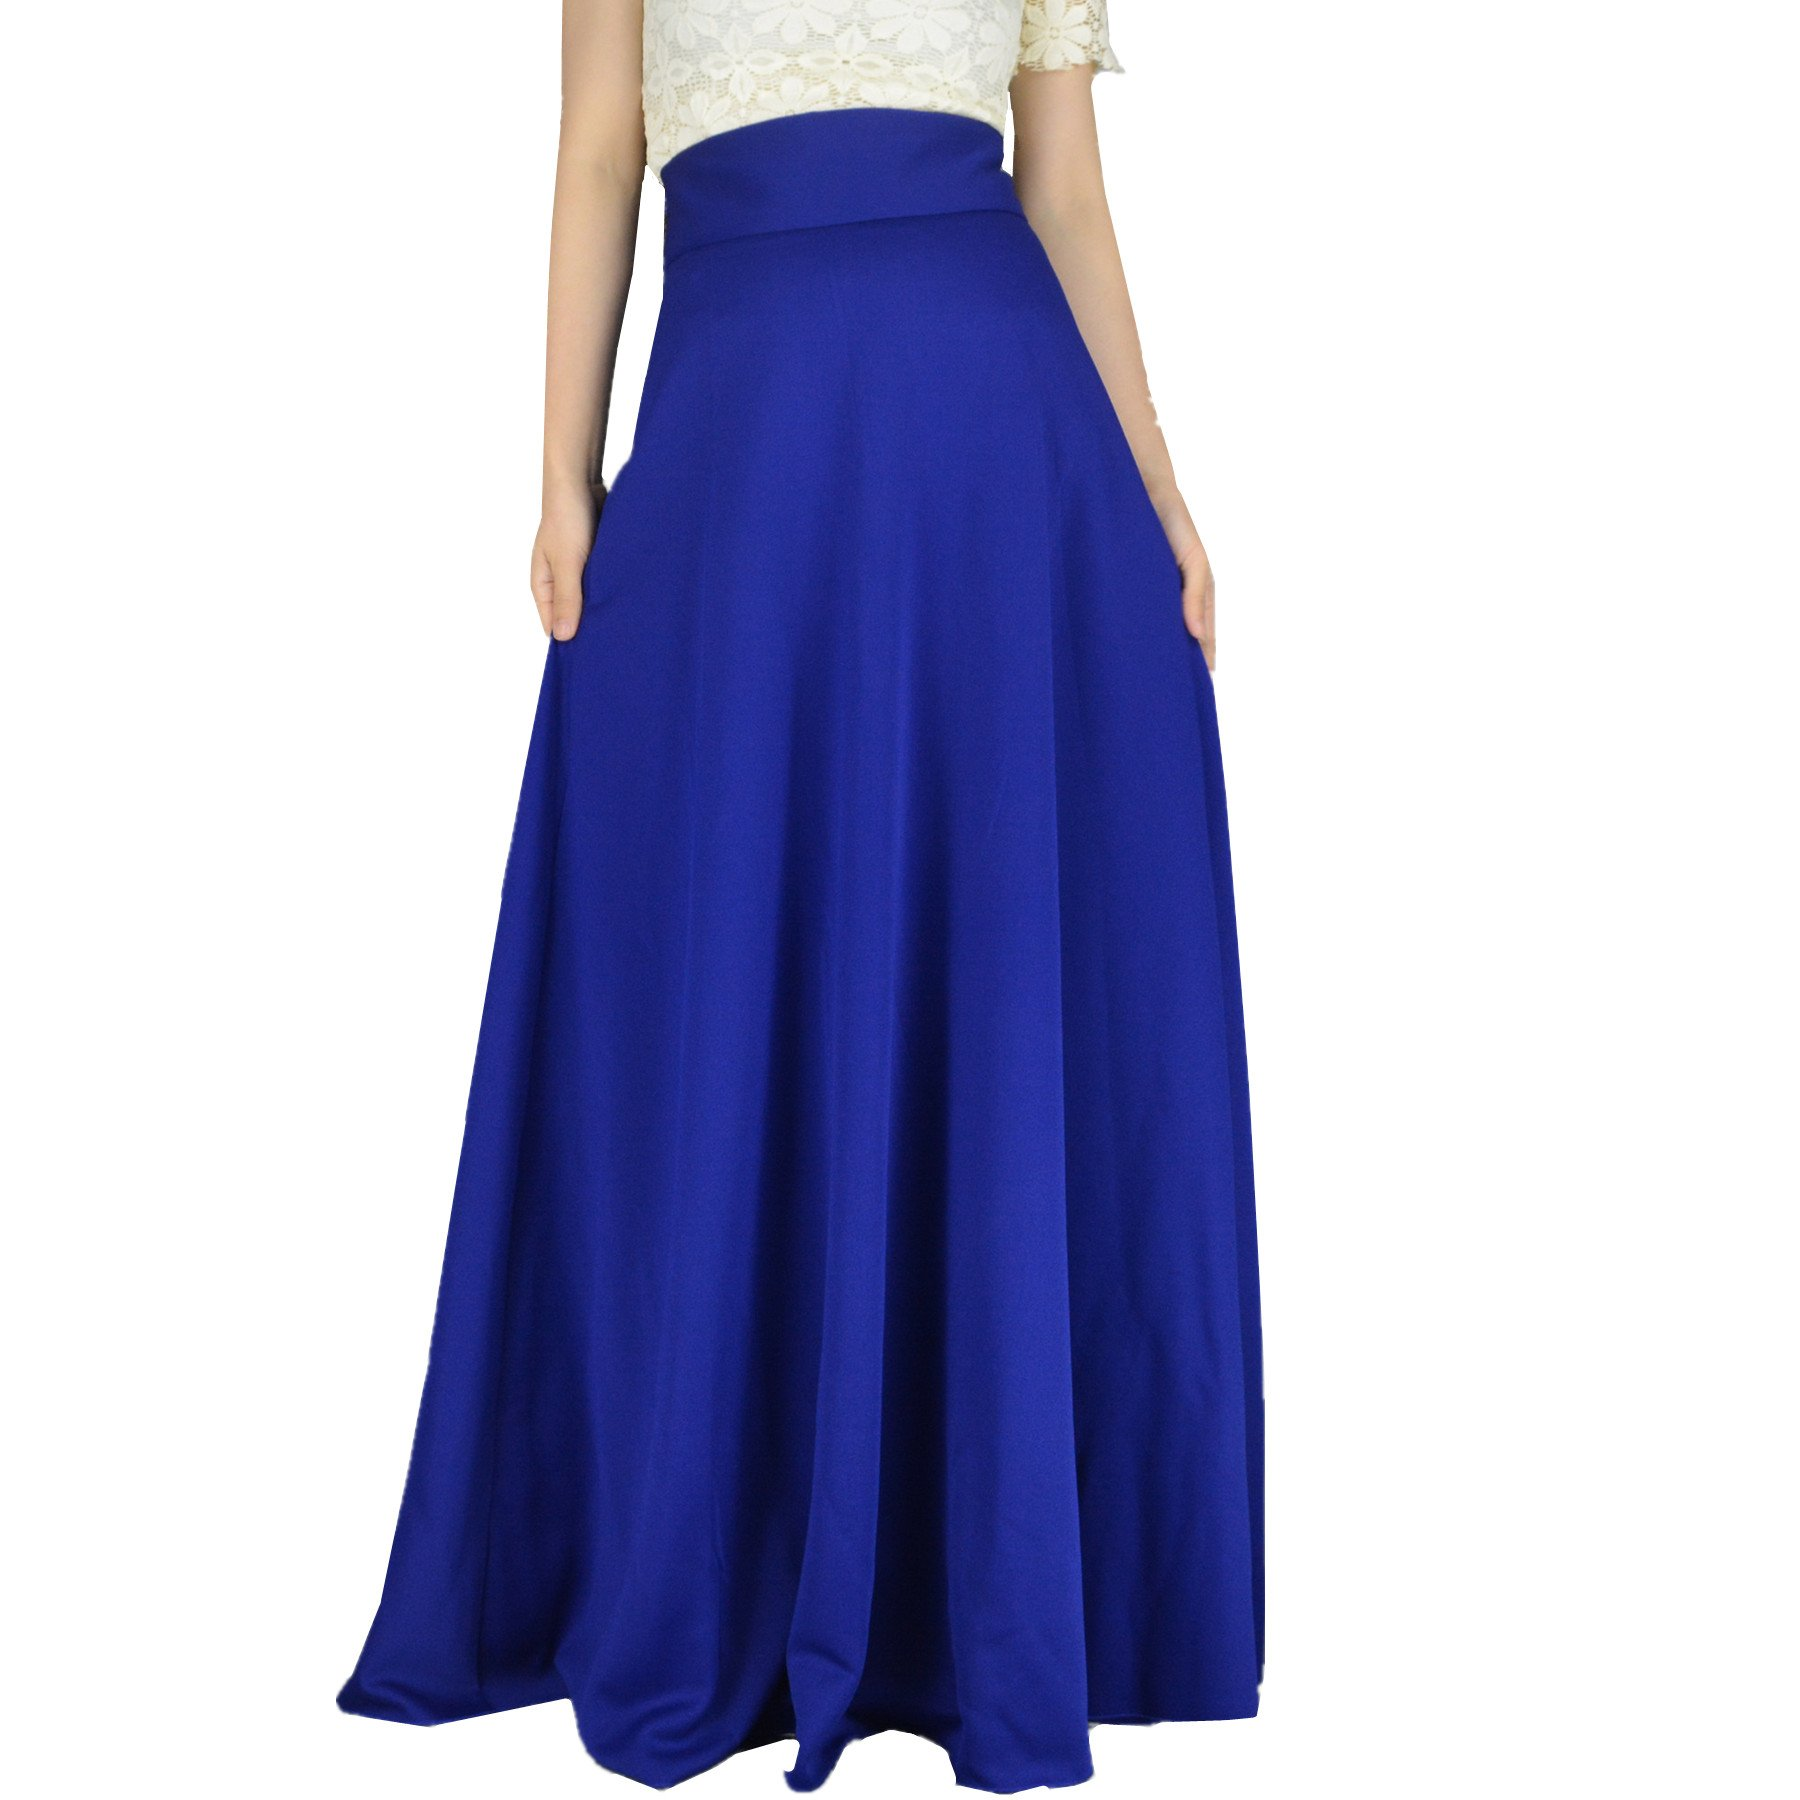 YSJERA Women's High Waist A-Line Pleated Solid Vintage Swing Maxi Skirts Midi Skirt Party (S, Blue Long)